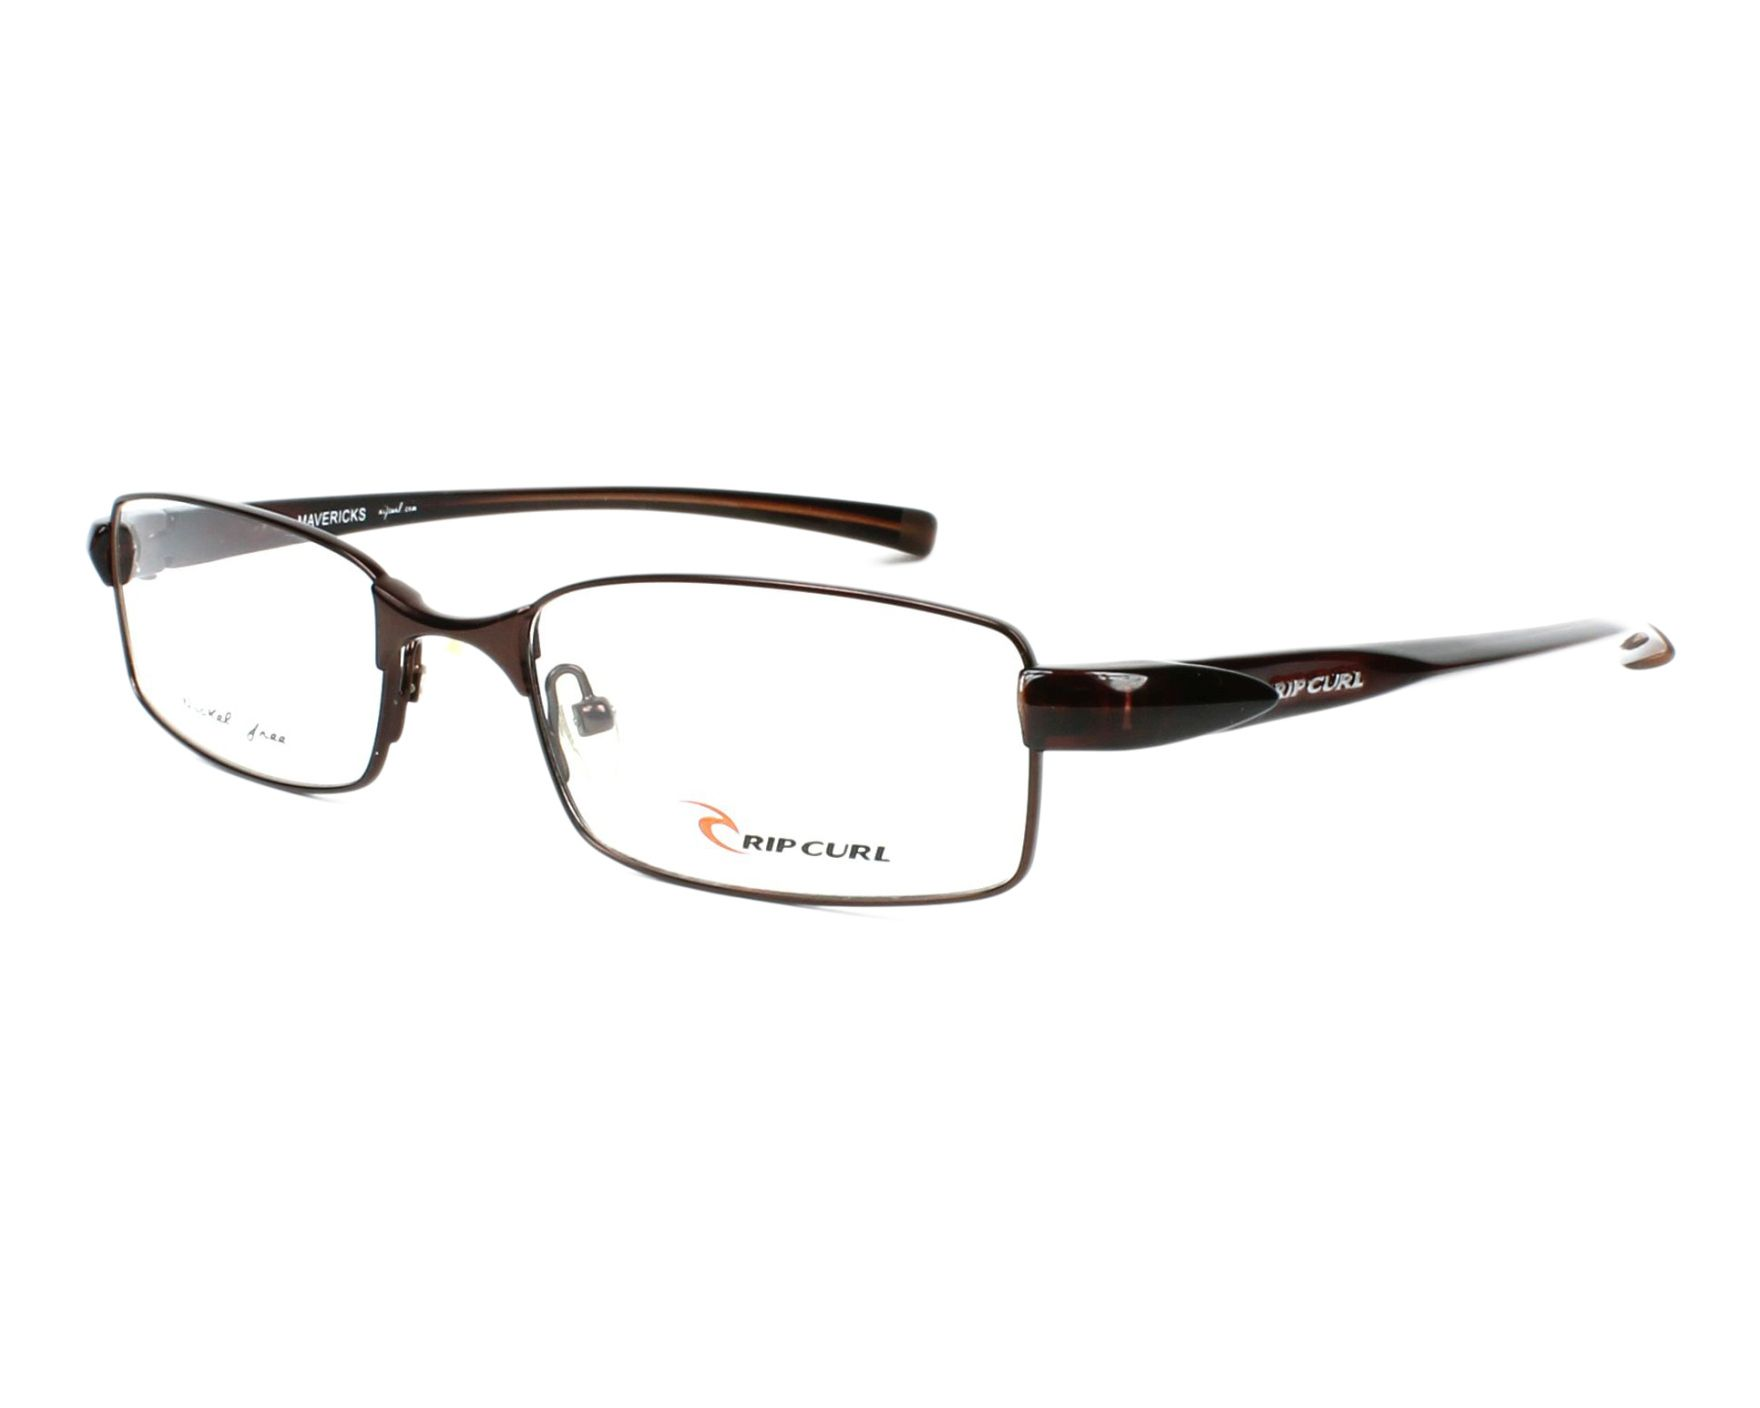 order your ripcurl eyeglasses vomg 72 9 53 today